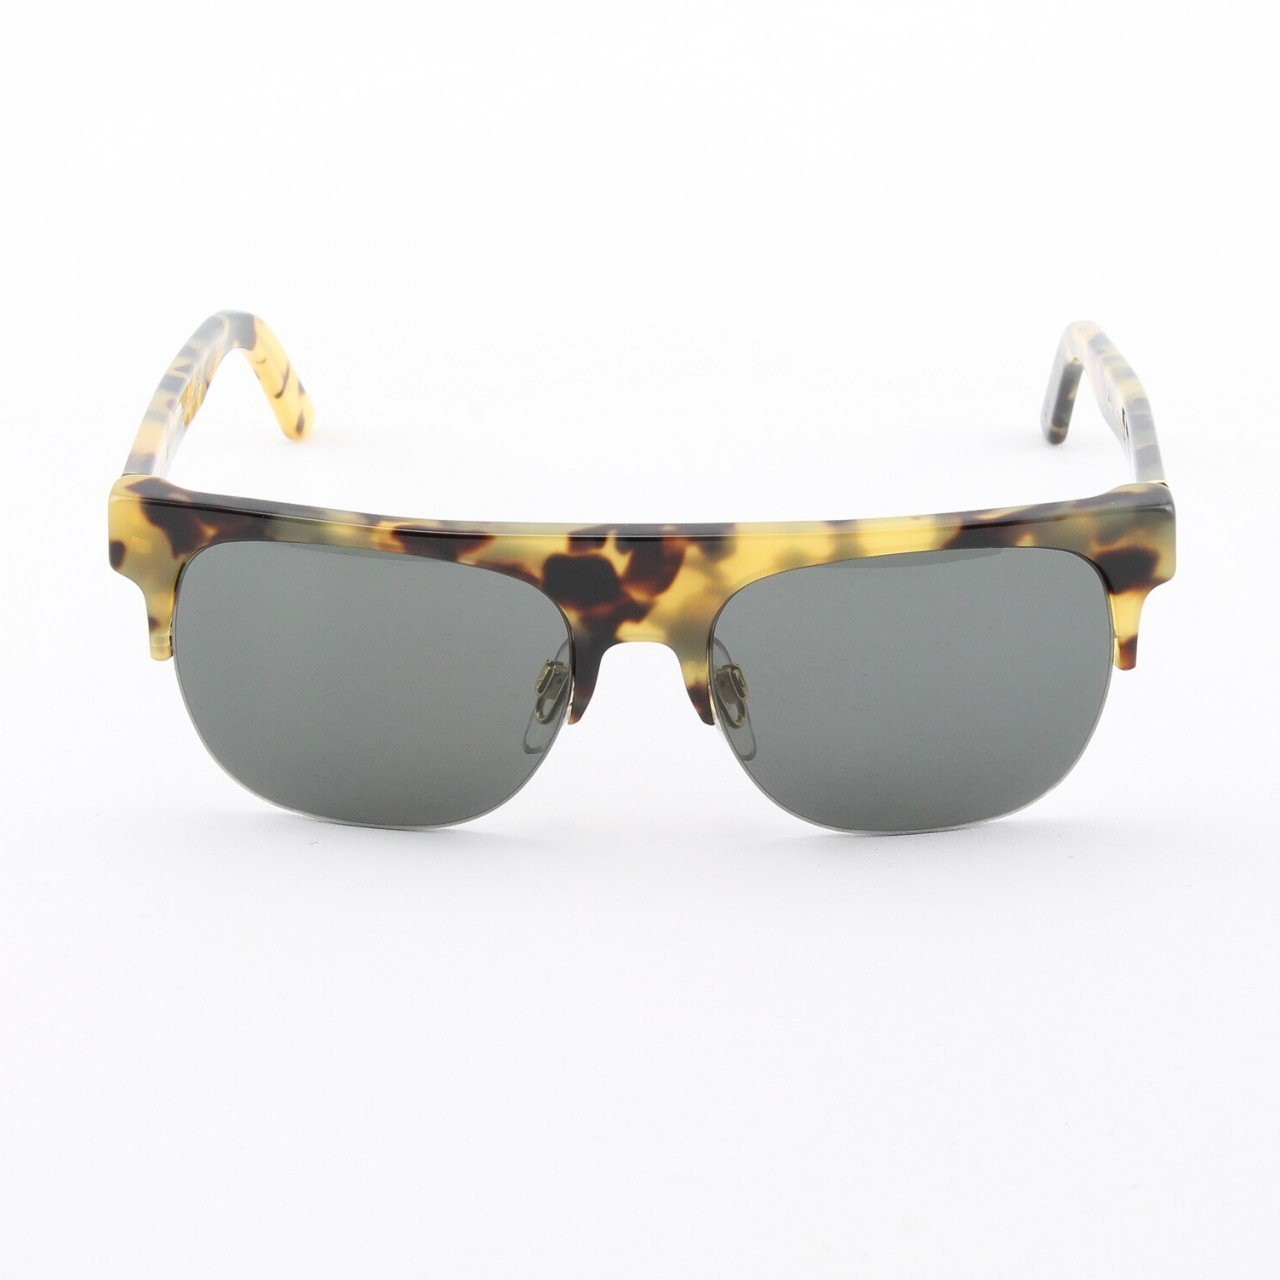 Super Andrea 267 Sunglasses Cheetah Frame with Black Zeiss Lenses by RETROSUPERFUTURE